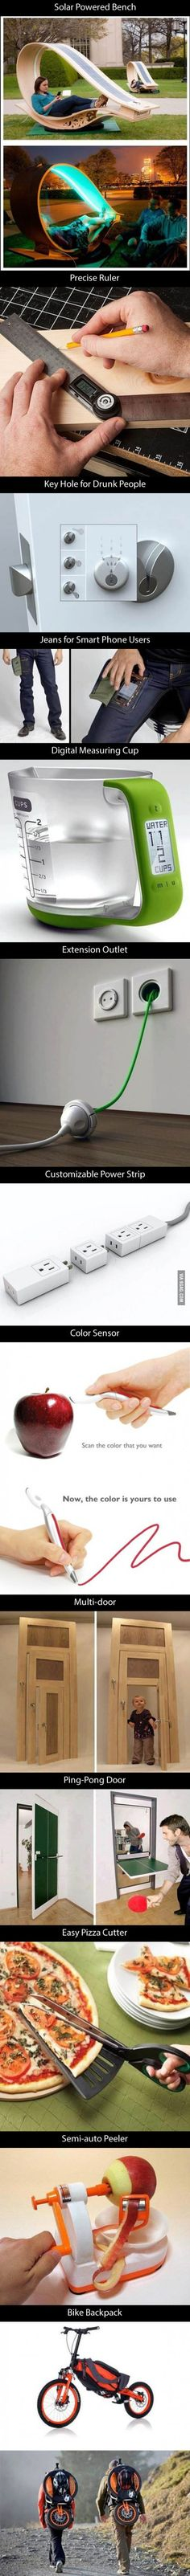 Life Hacks and other Cool Inventions